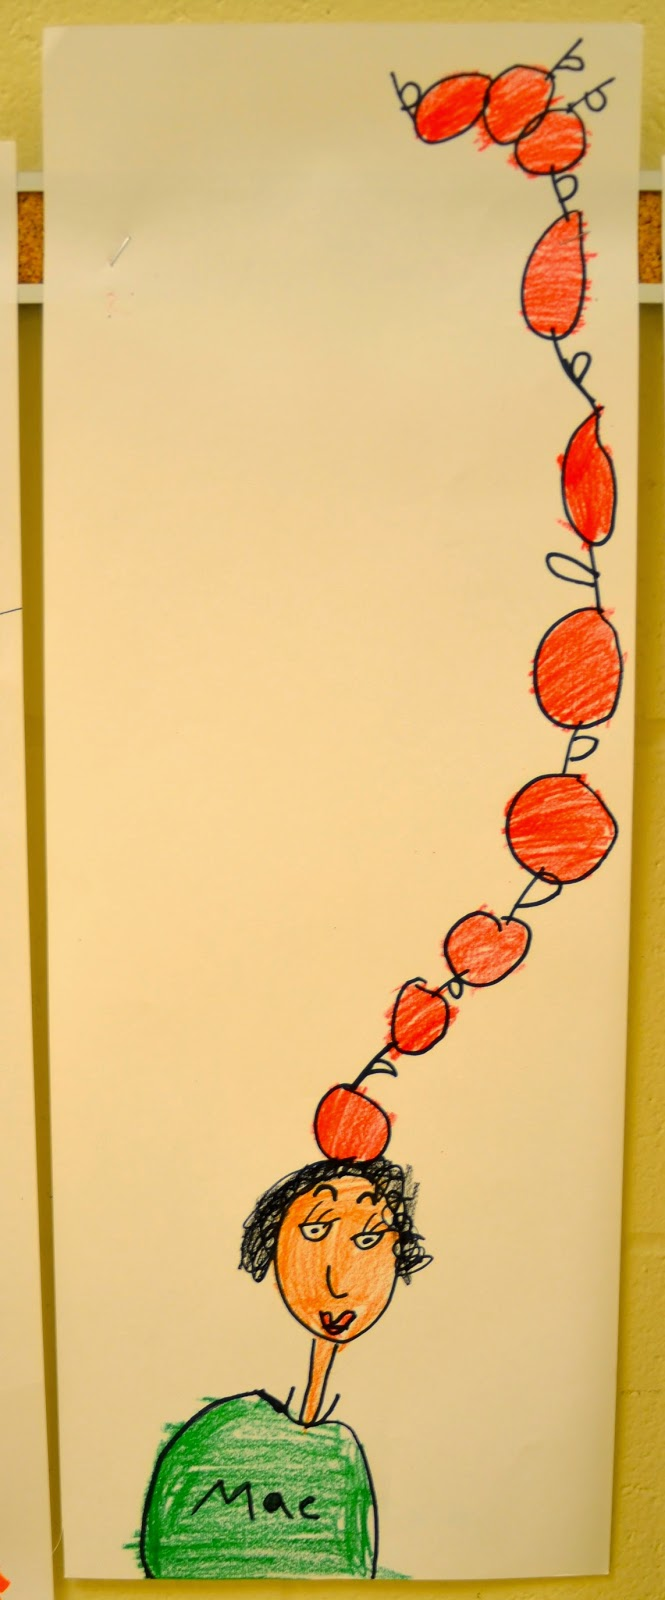 Dr. Seuss Ten Apples Up On Top simple craftivity. This Dr. Seuss craft will inspire your little readers. Click for directions for this simple Dr. Seuss craft project.